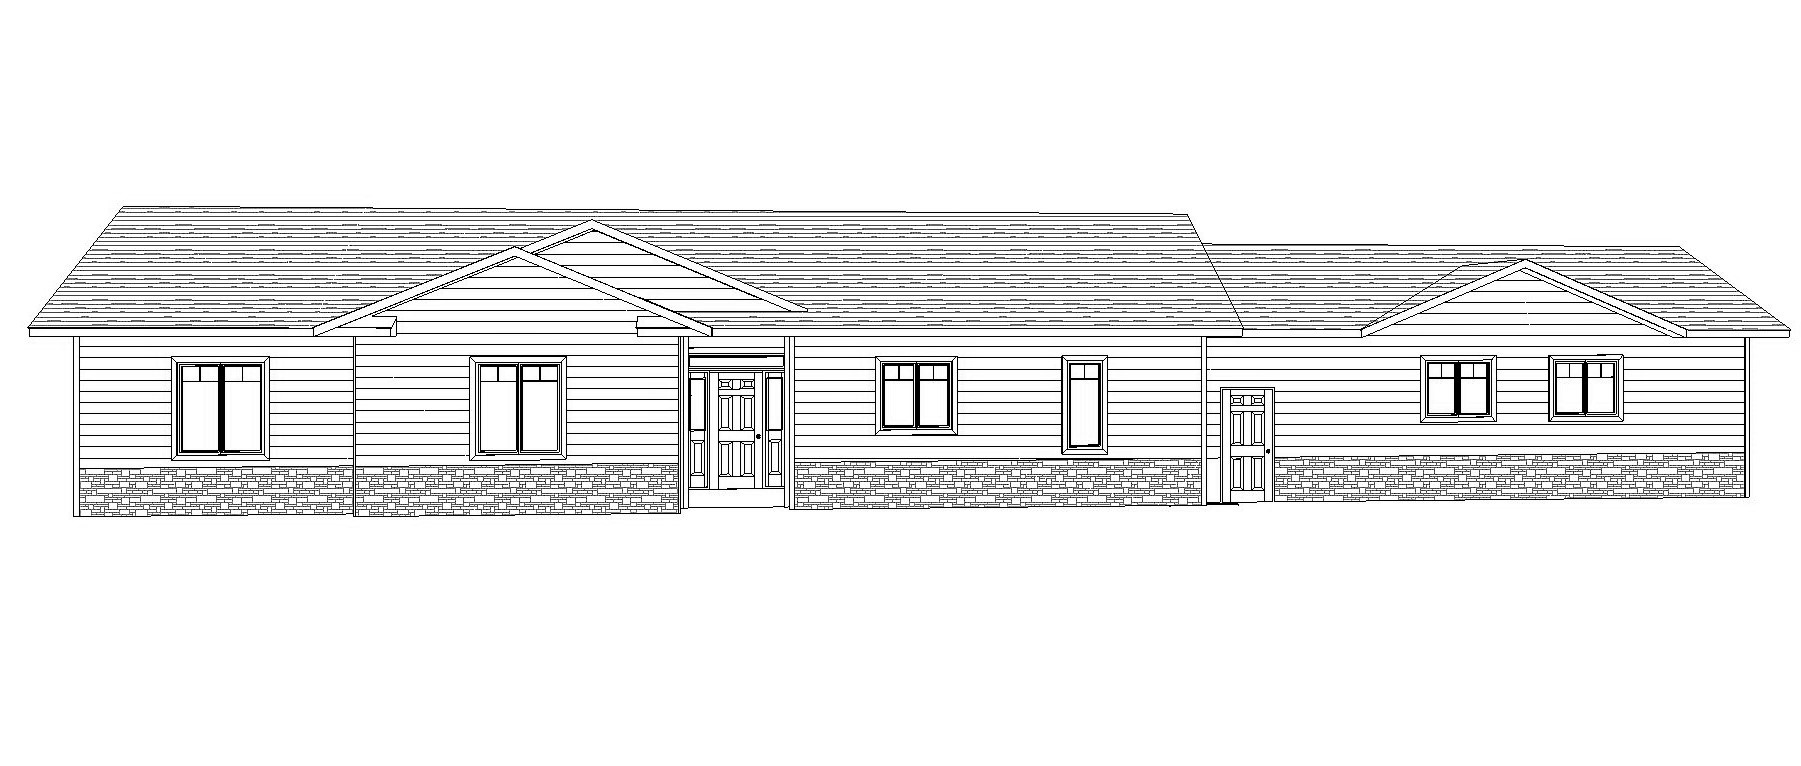 Penner Homes Elevation Map Id: 412